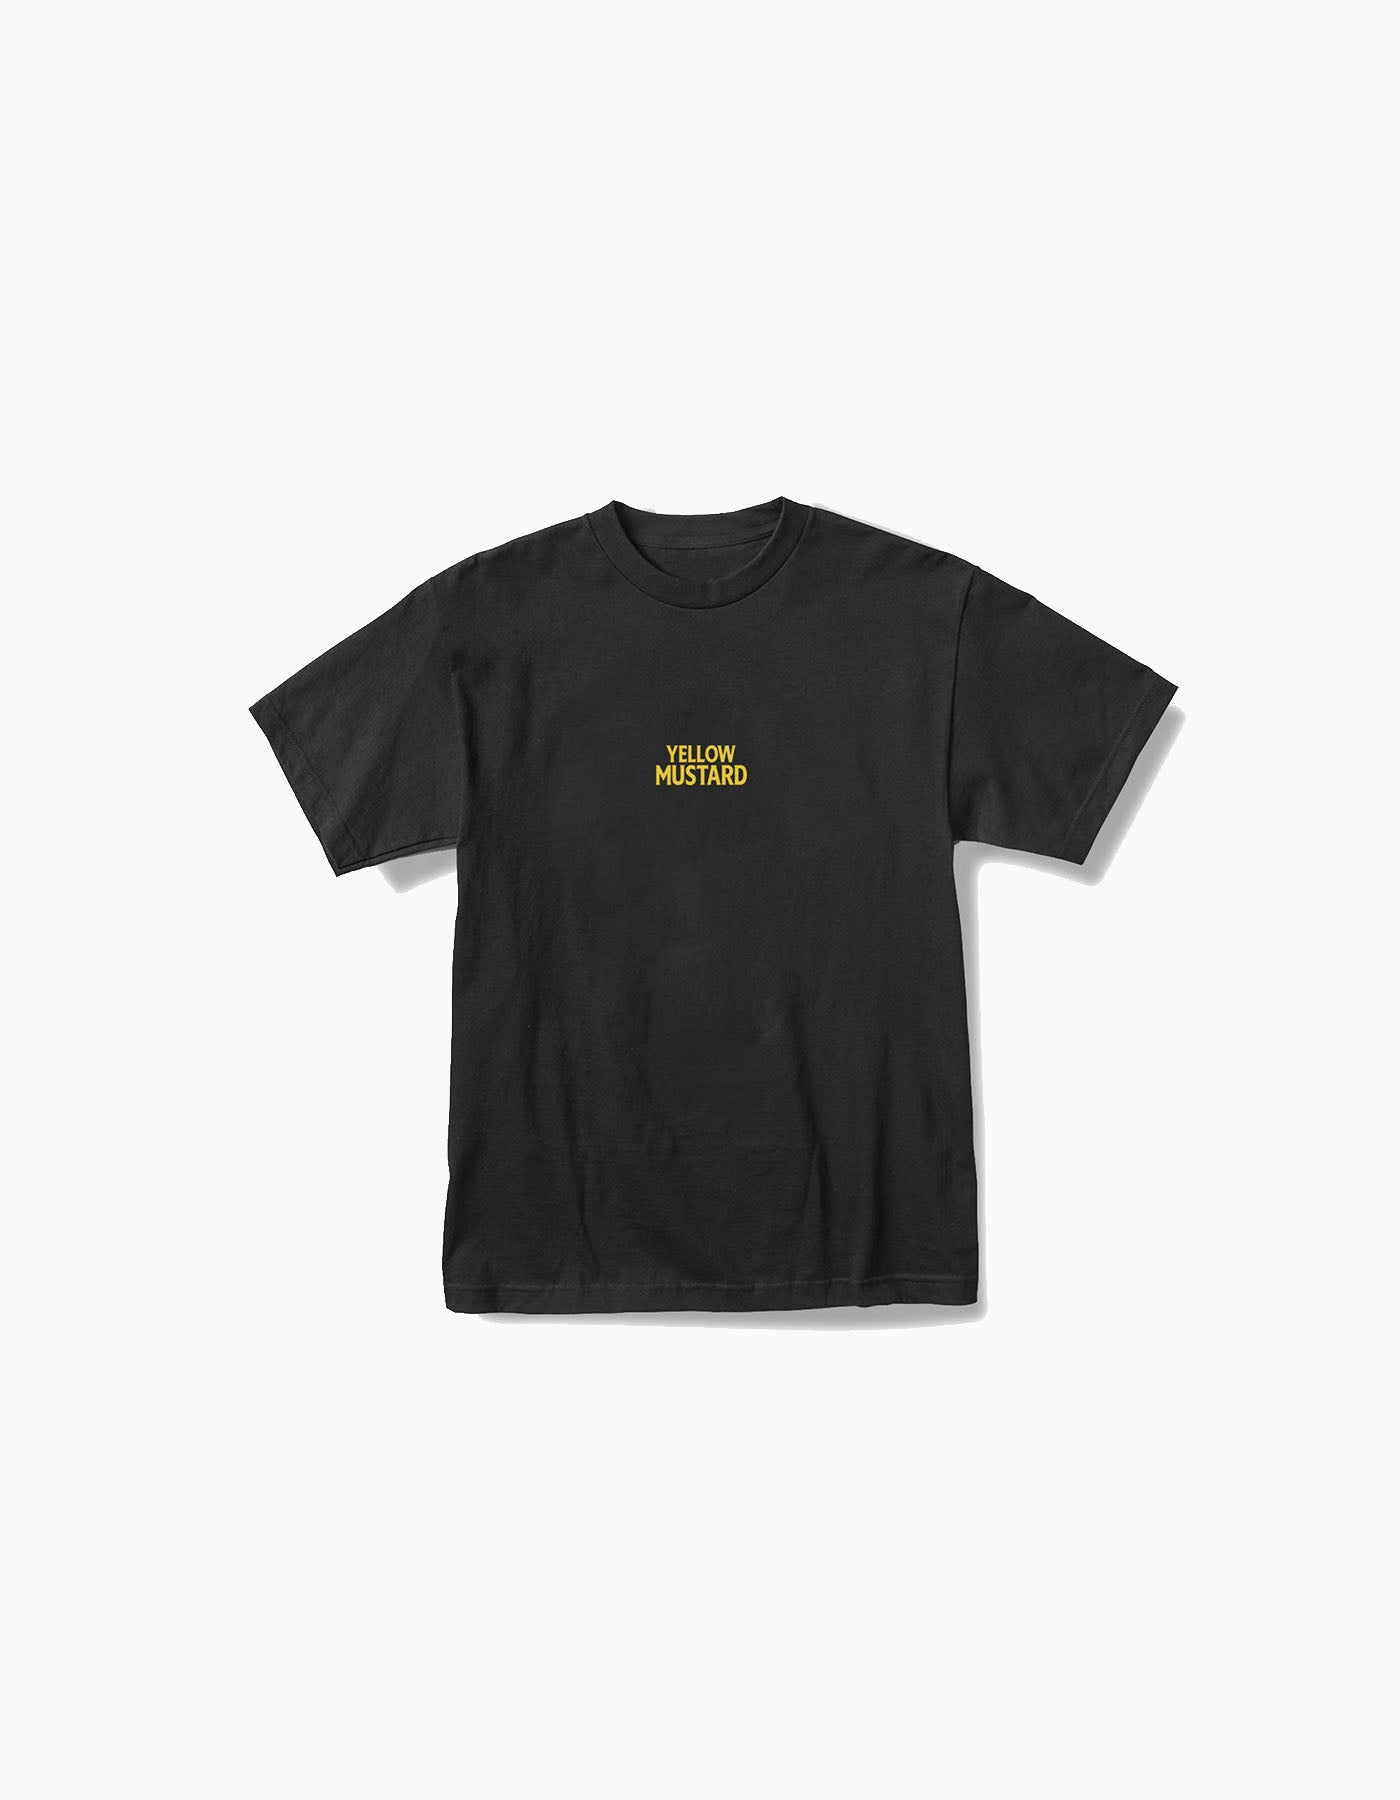 HARD - Summer 2018 x Yellow Mustard Collab Tee